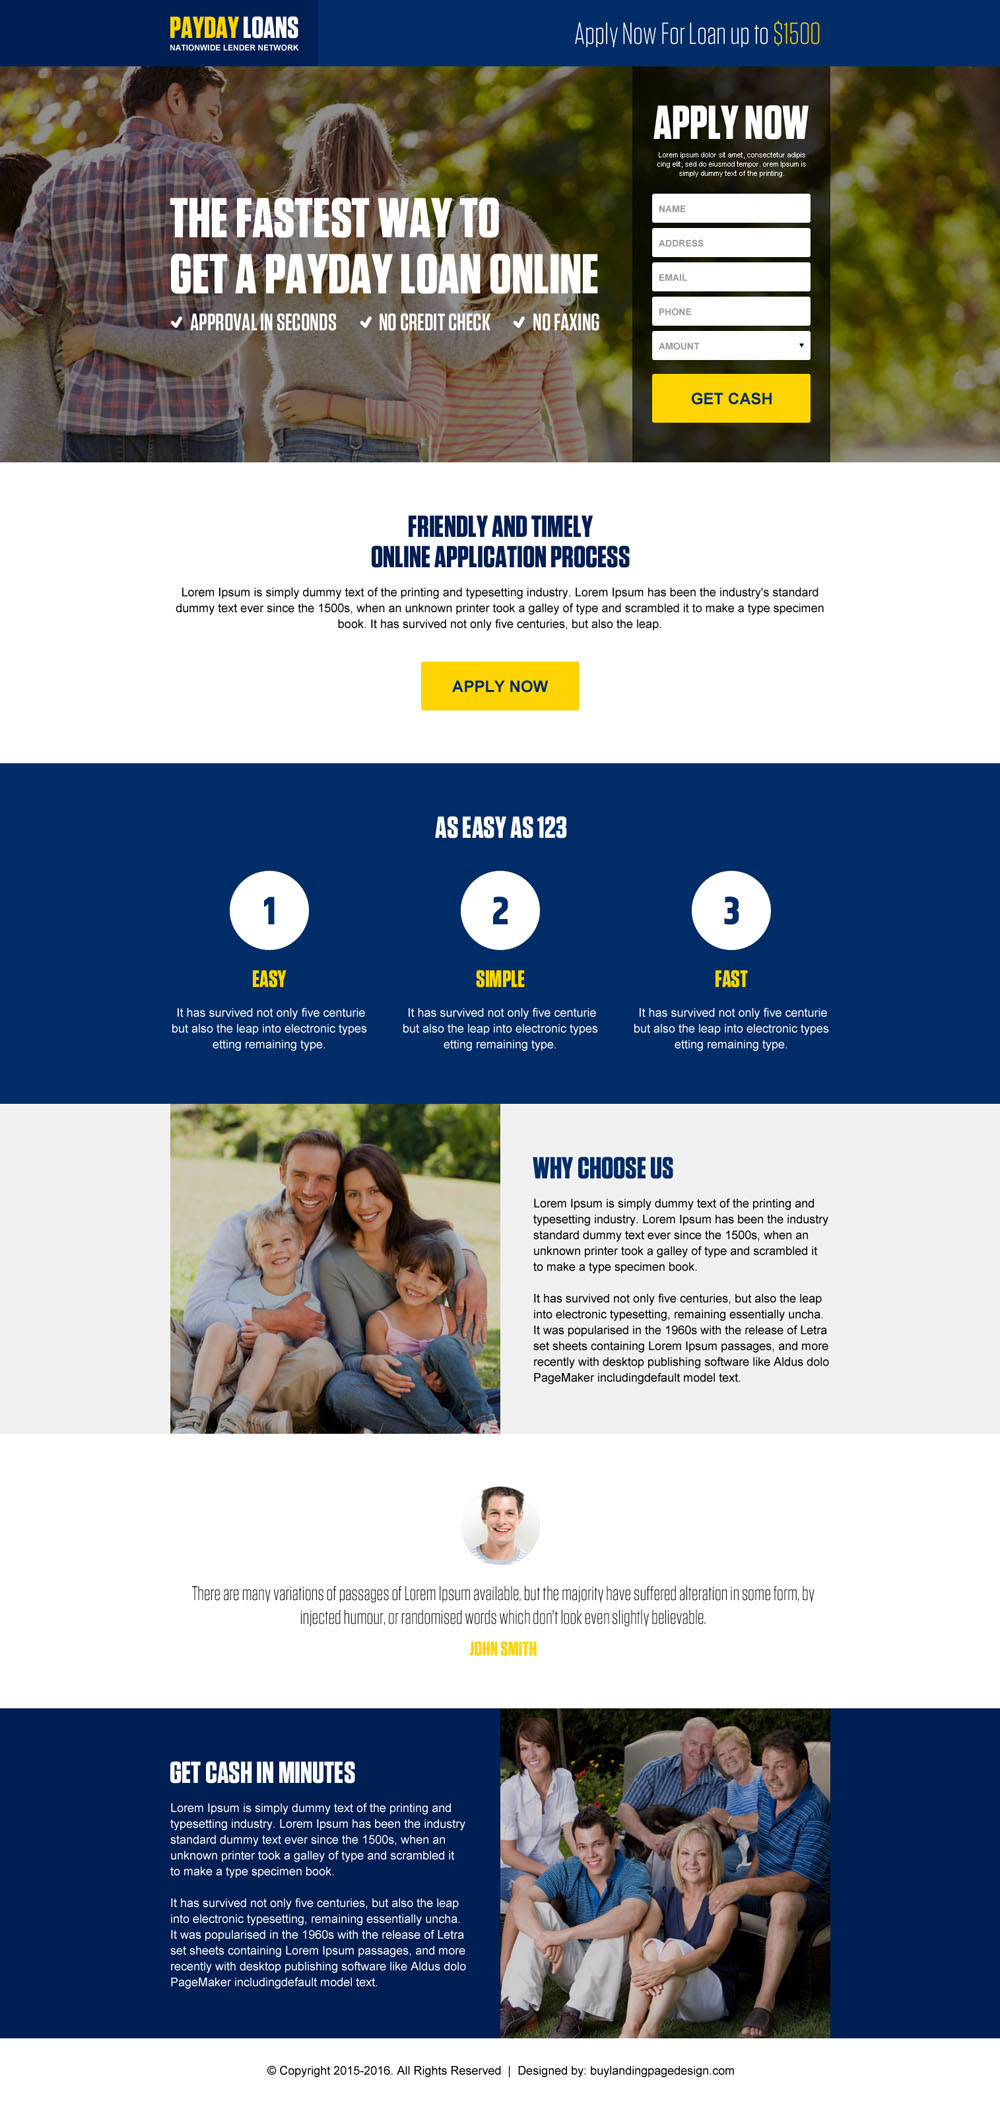 payday-loan-available-online-no-credit-check-converting-landing-page-design-025